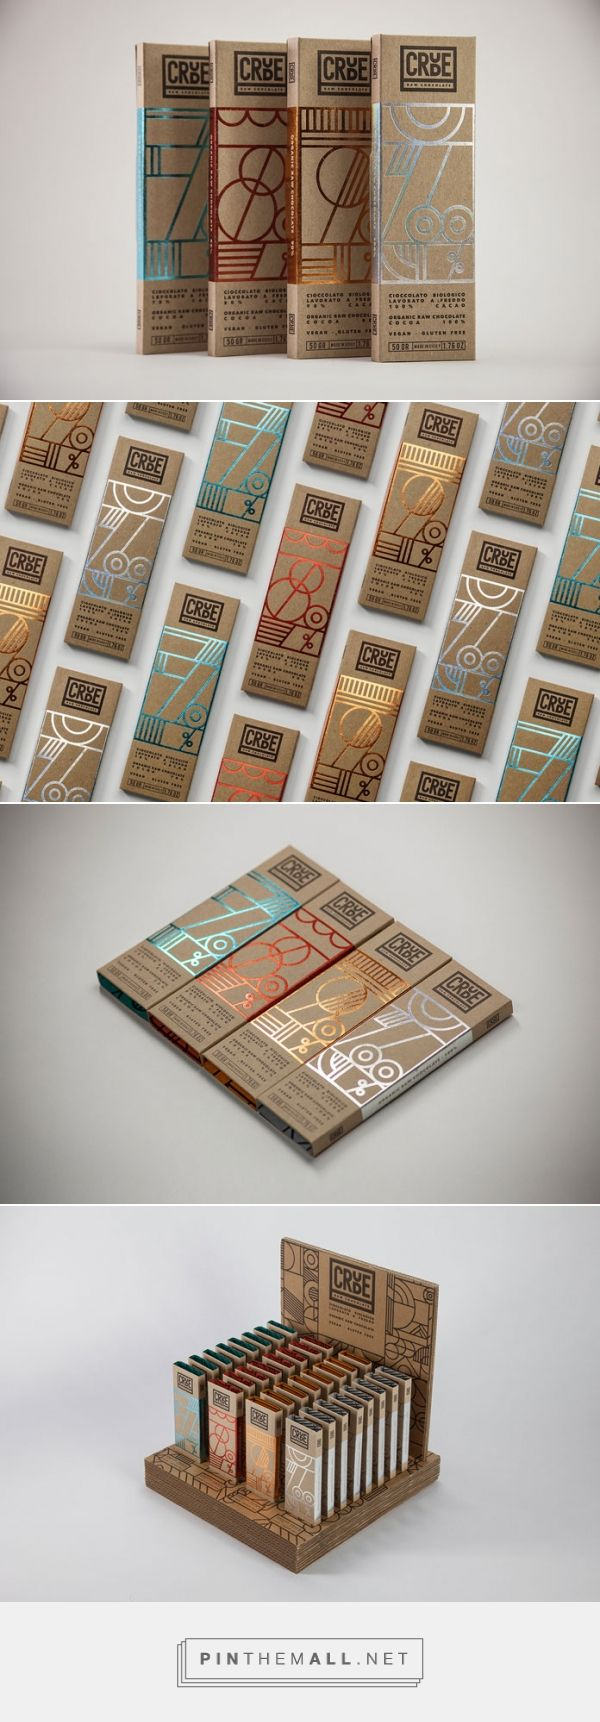 CRUDE – chocolate brand and packaging by Happycentro - created via https://pinthemall.net